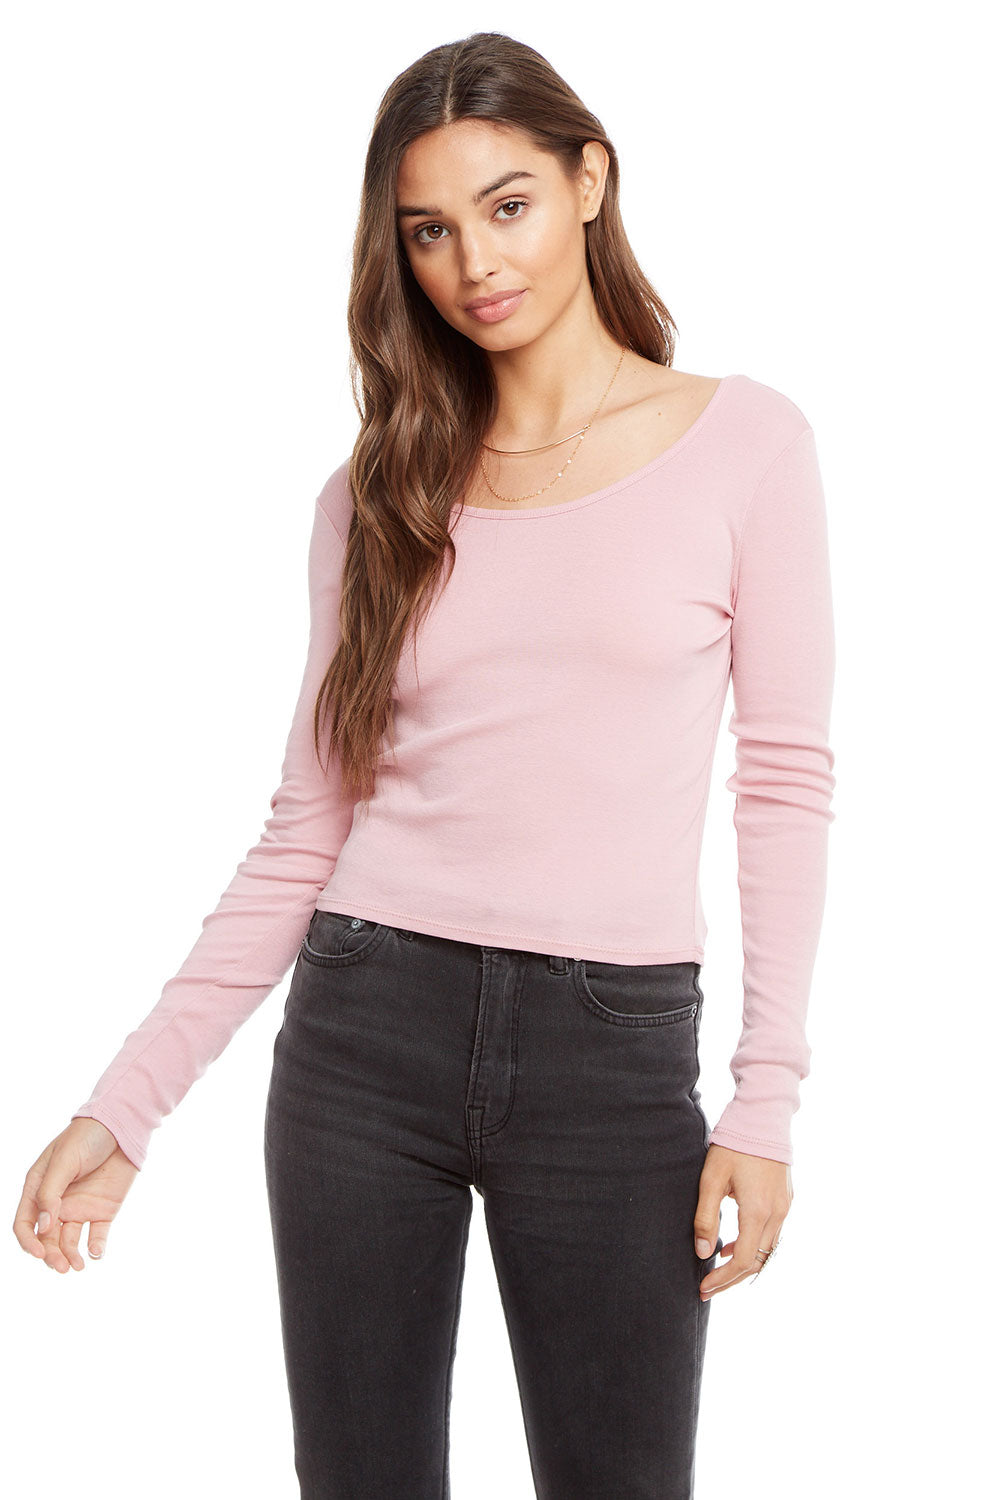 Baby Rib Long Sleeve Double Scoop Crop Top BCA chaserbrand4.myshopify.com